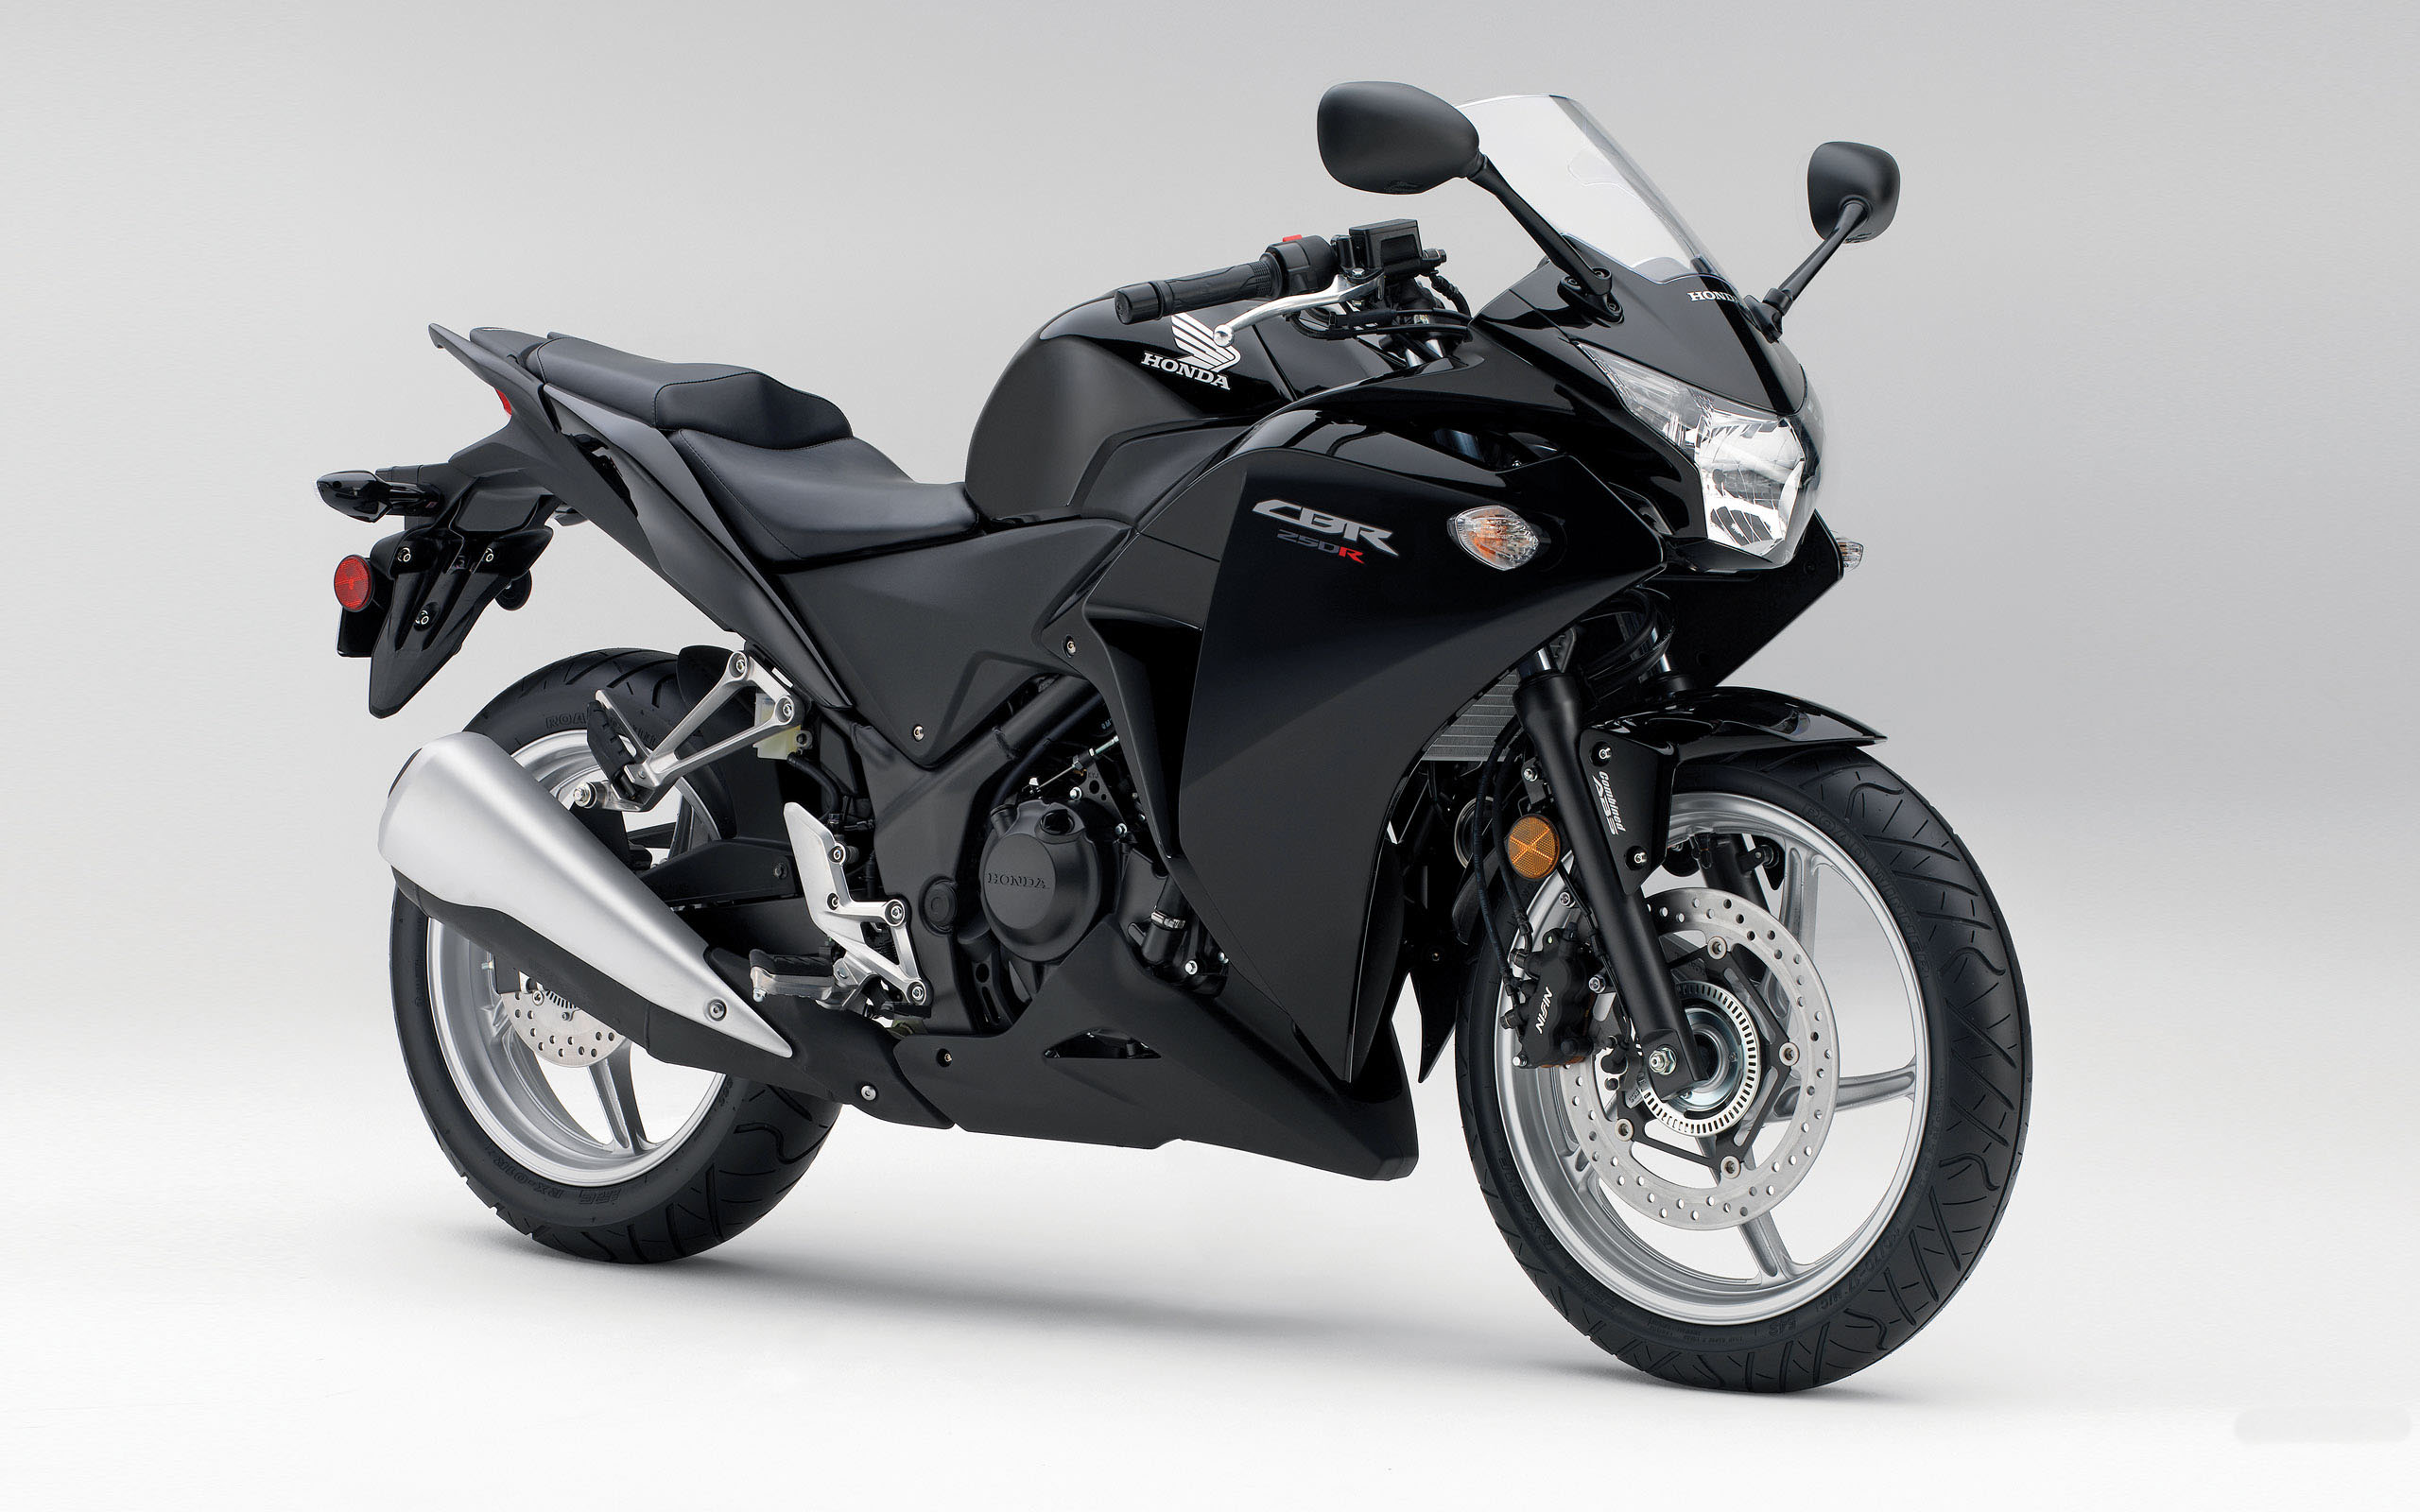 pc wallpaper Honda CBR250R ABS 2560x1600 download wallpaper